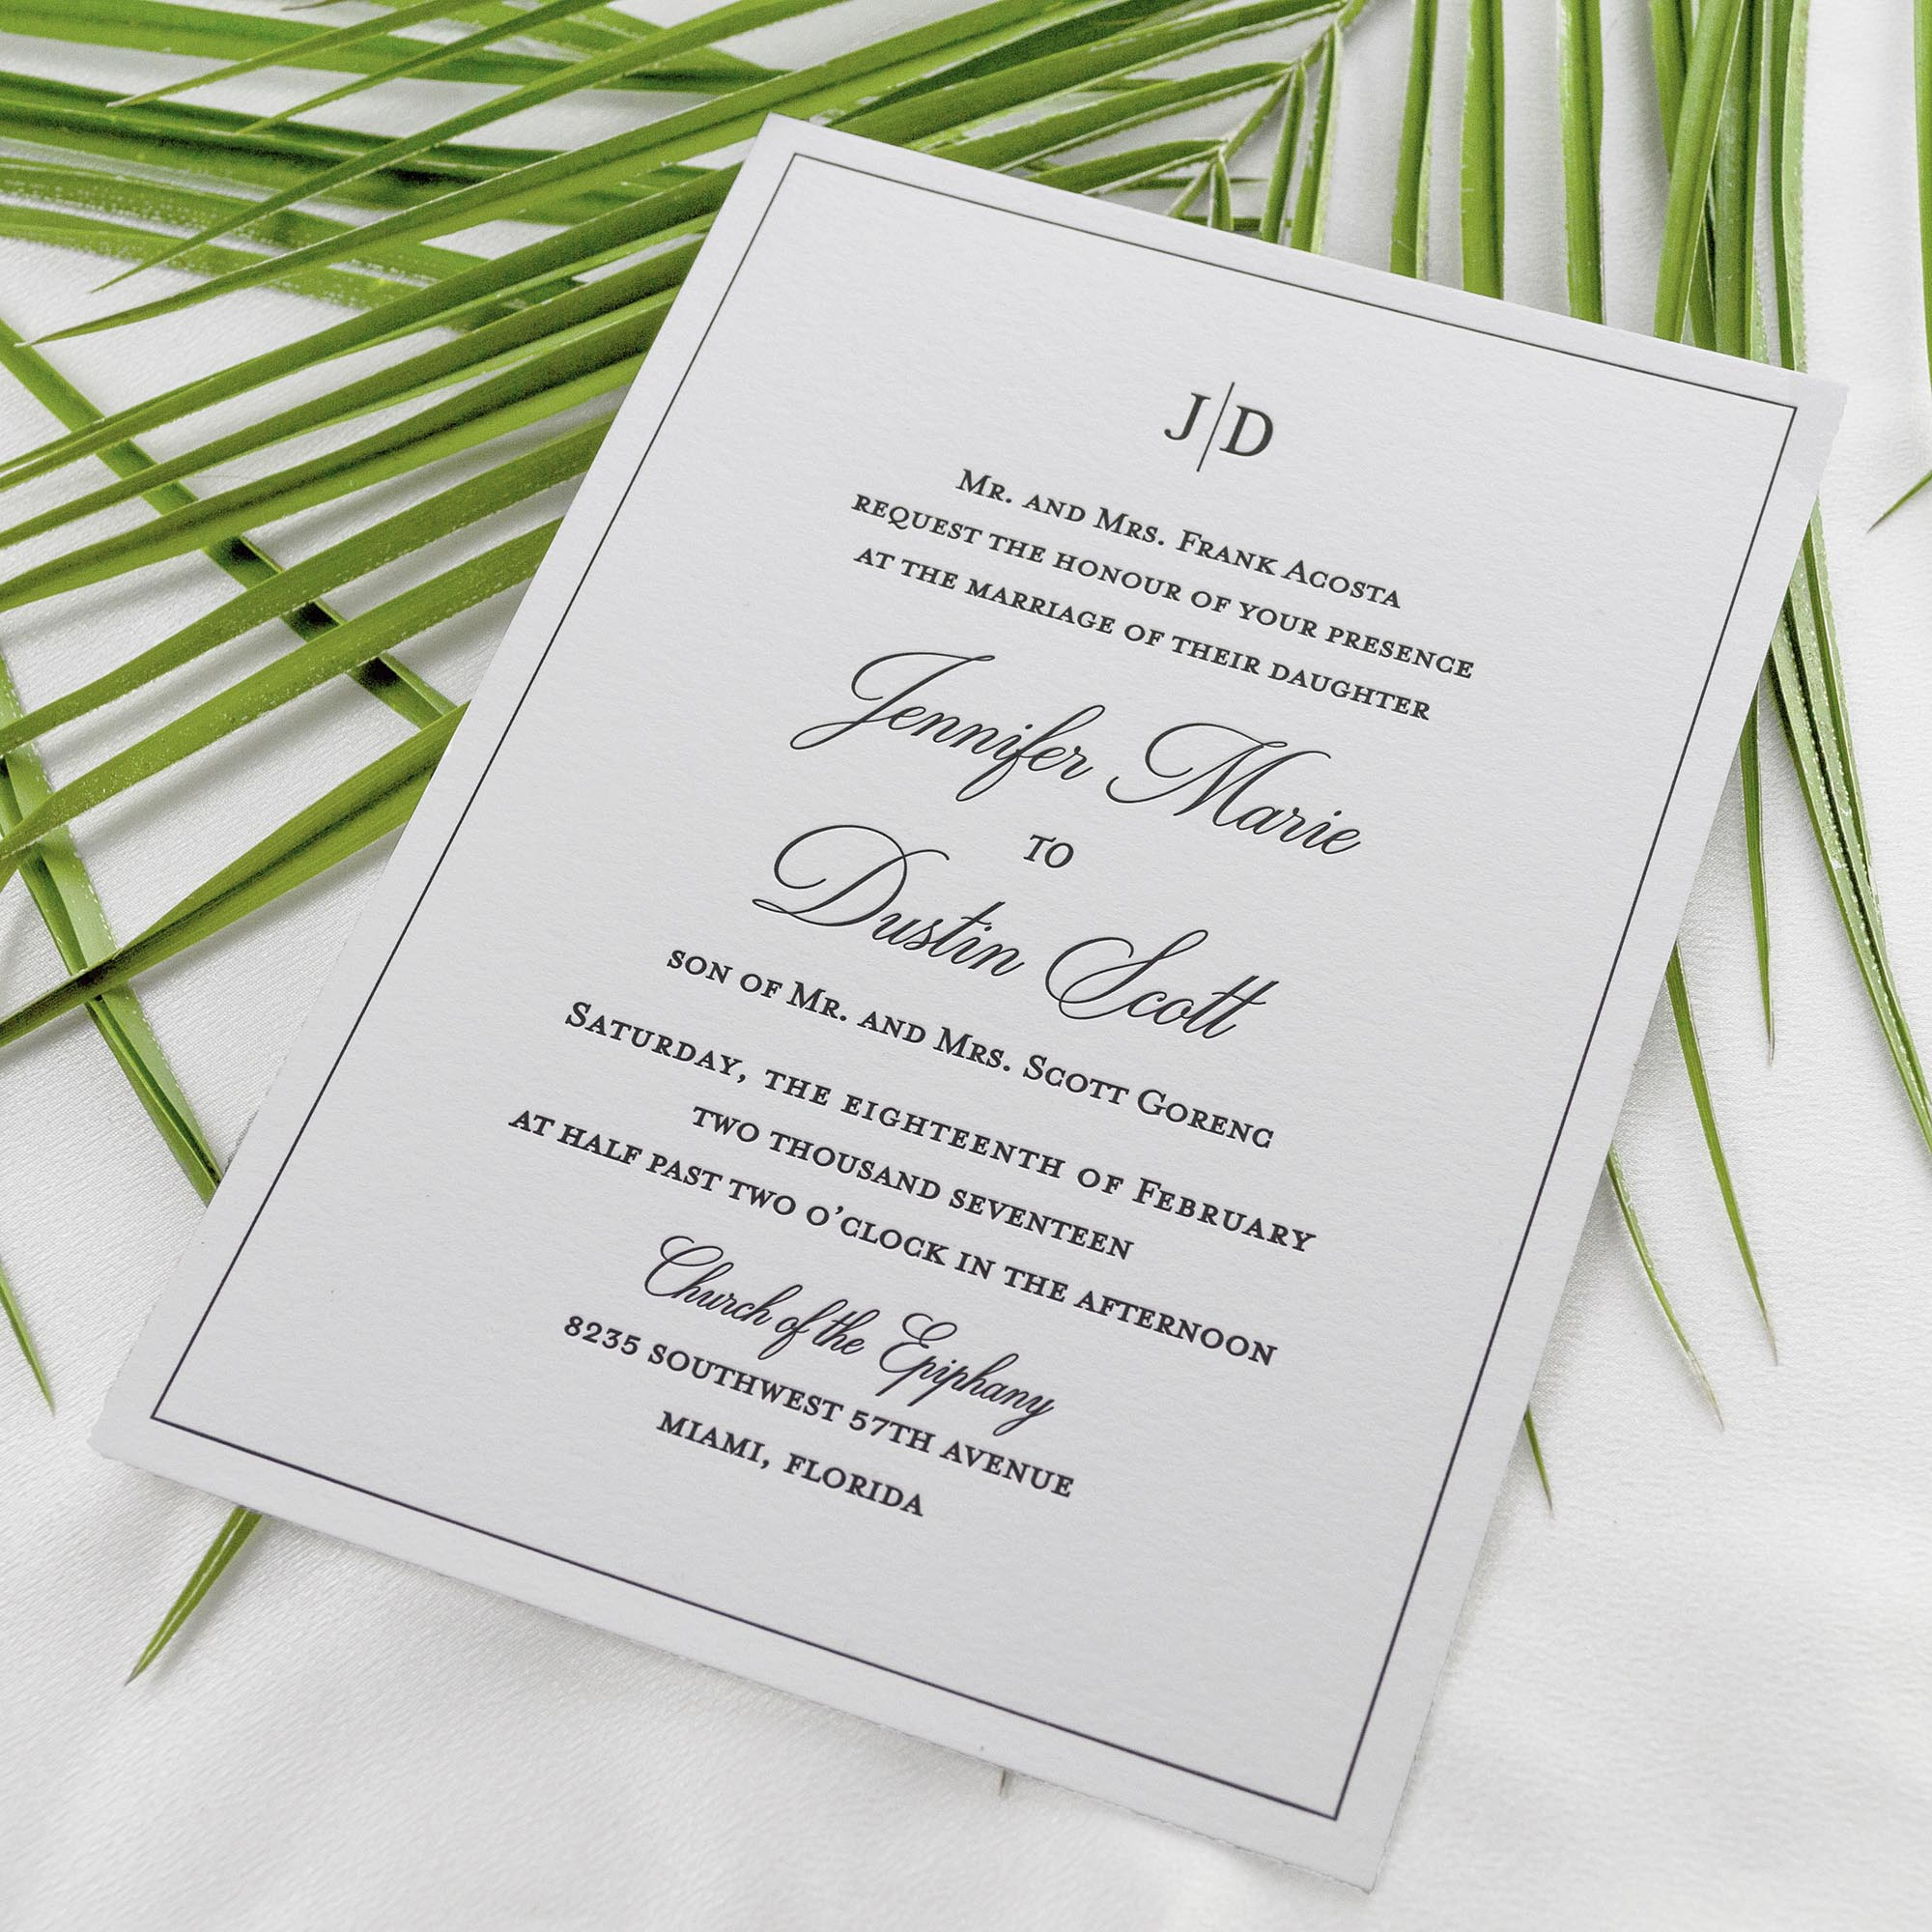 Chic, Minimalist Letterpress Invitations